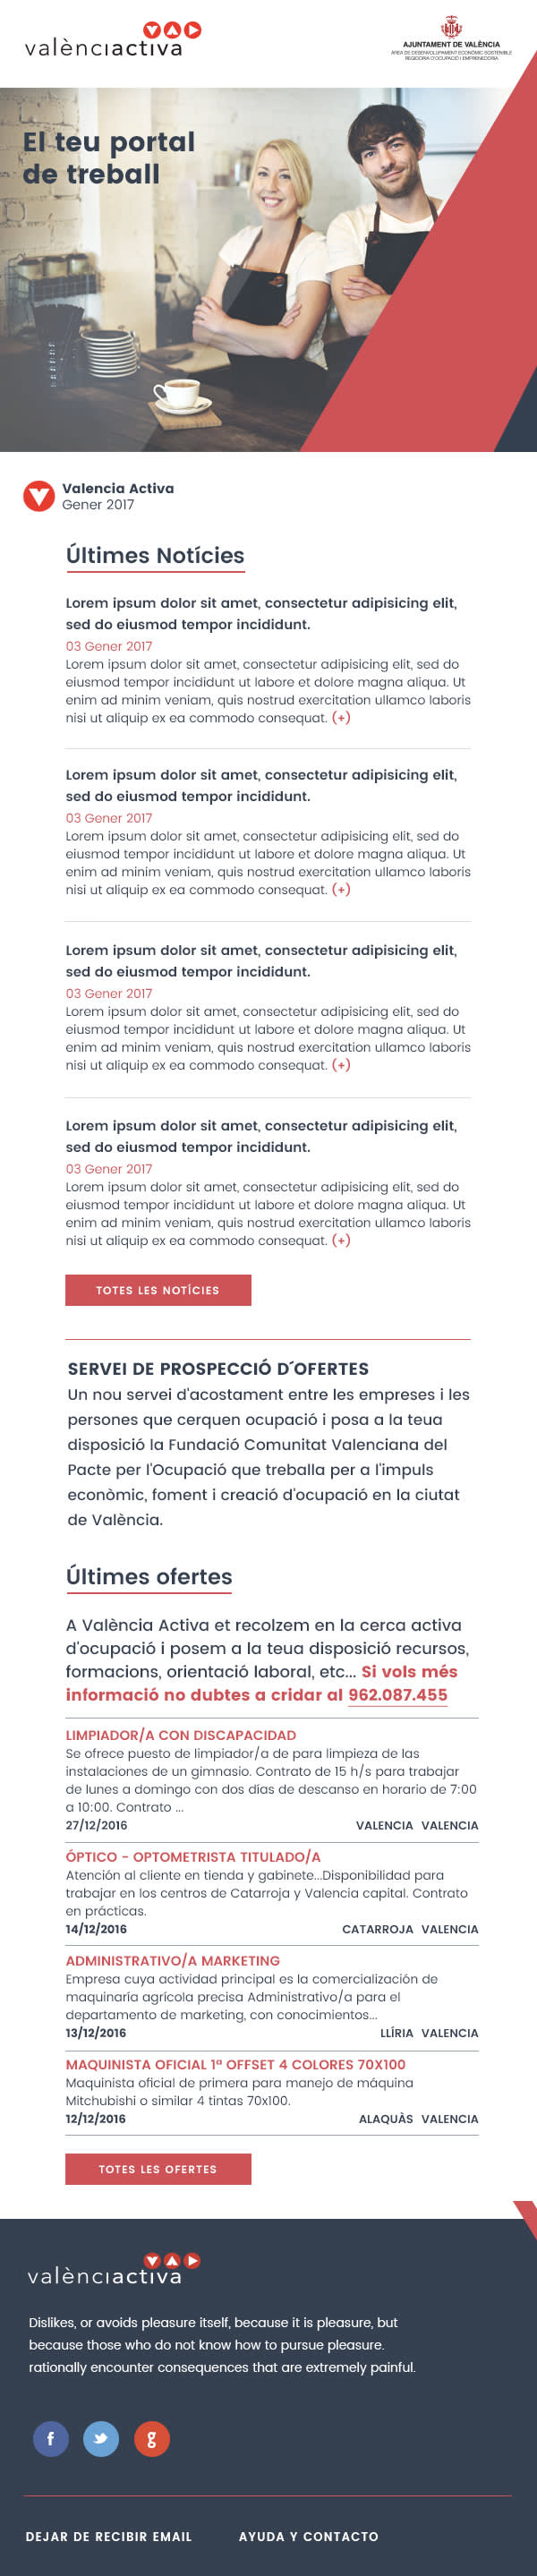 Image of an email newsletter for valencia activa